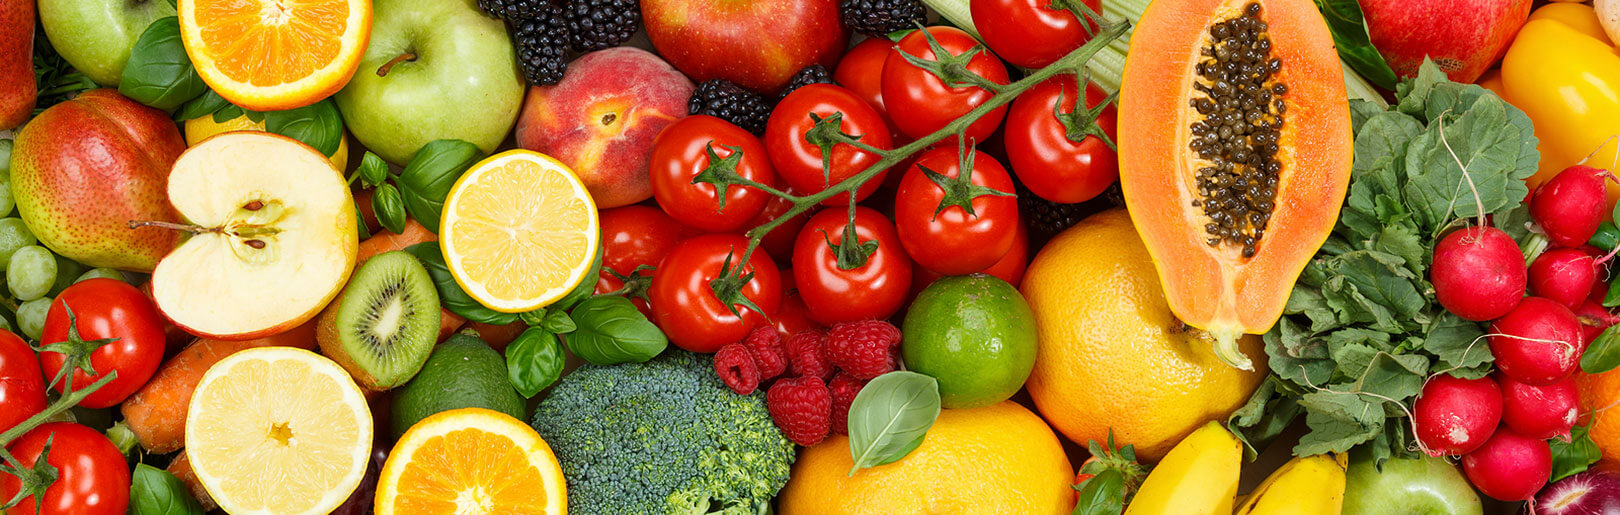 Colorful array of fruits and veggies recommended with nutritional coaching at CrossFit Alaska.